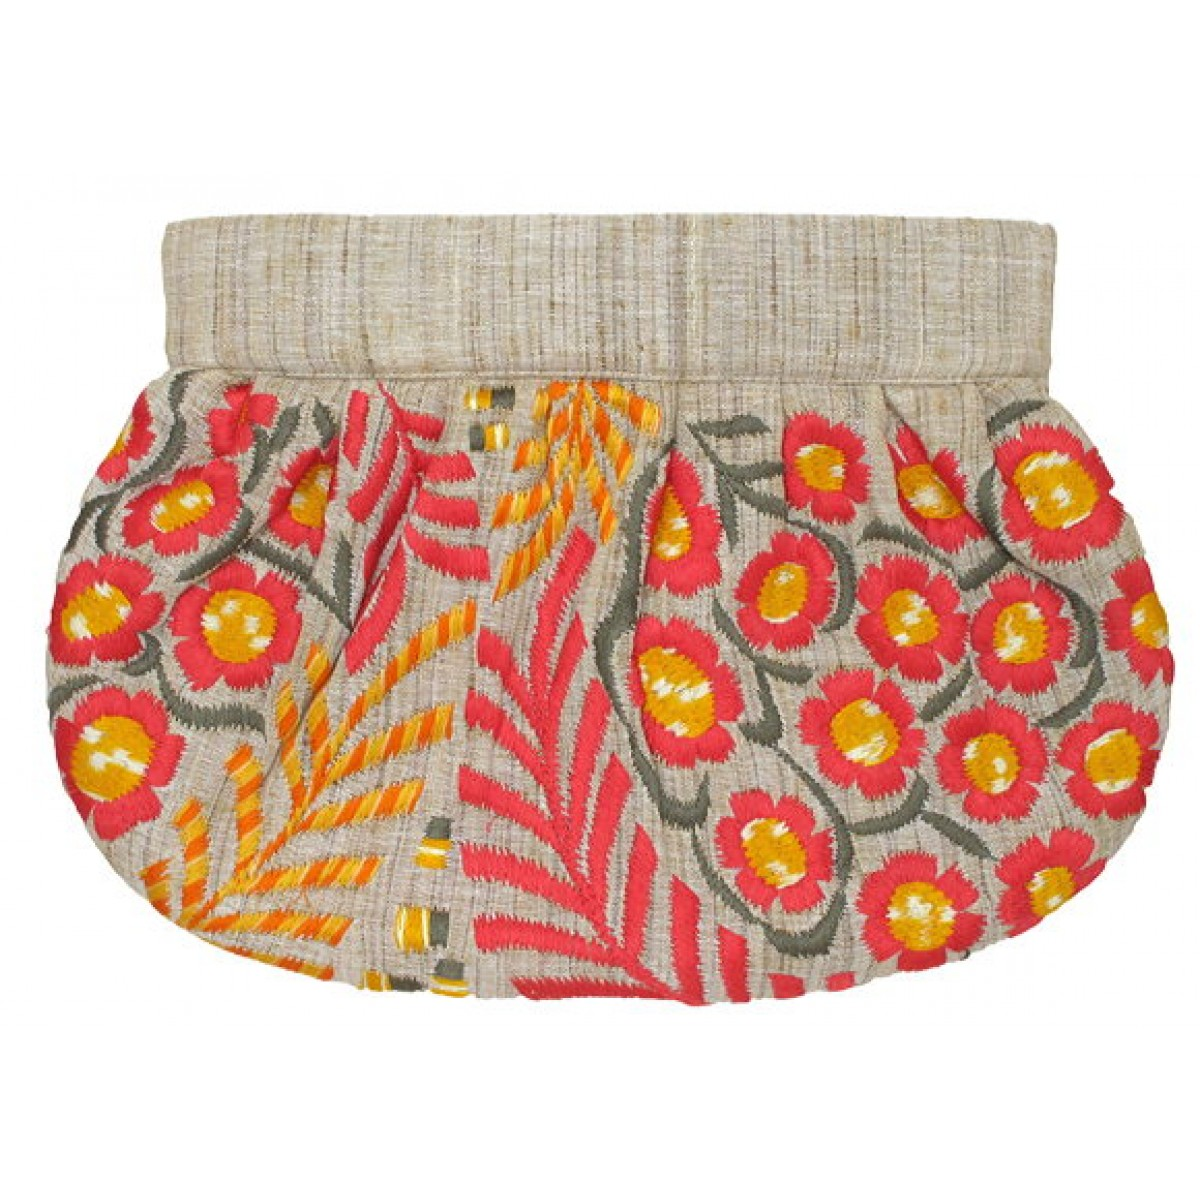 Clutch with Embroidered Flowers